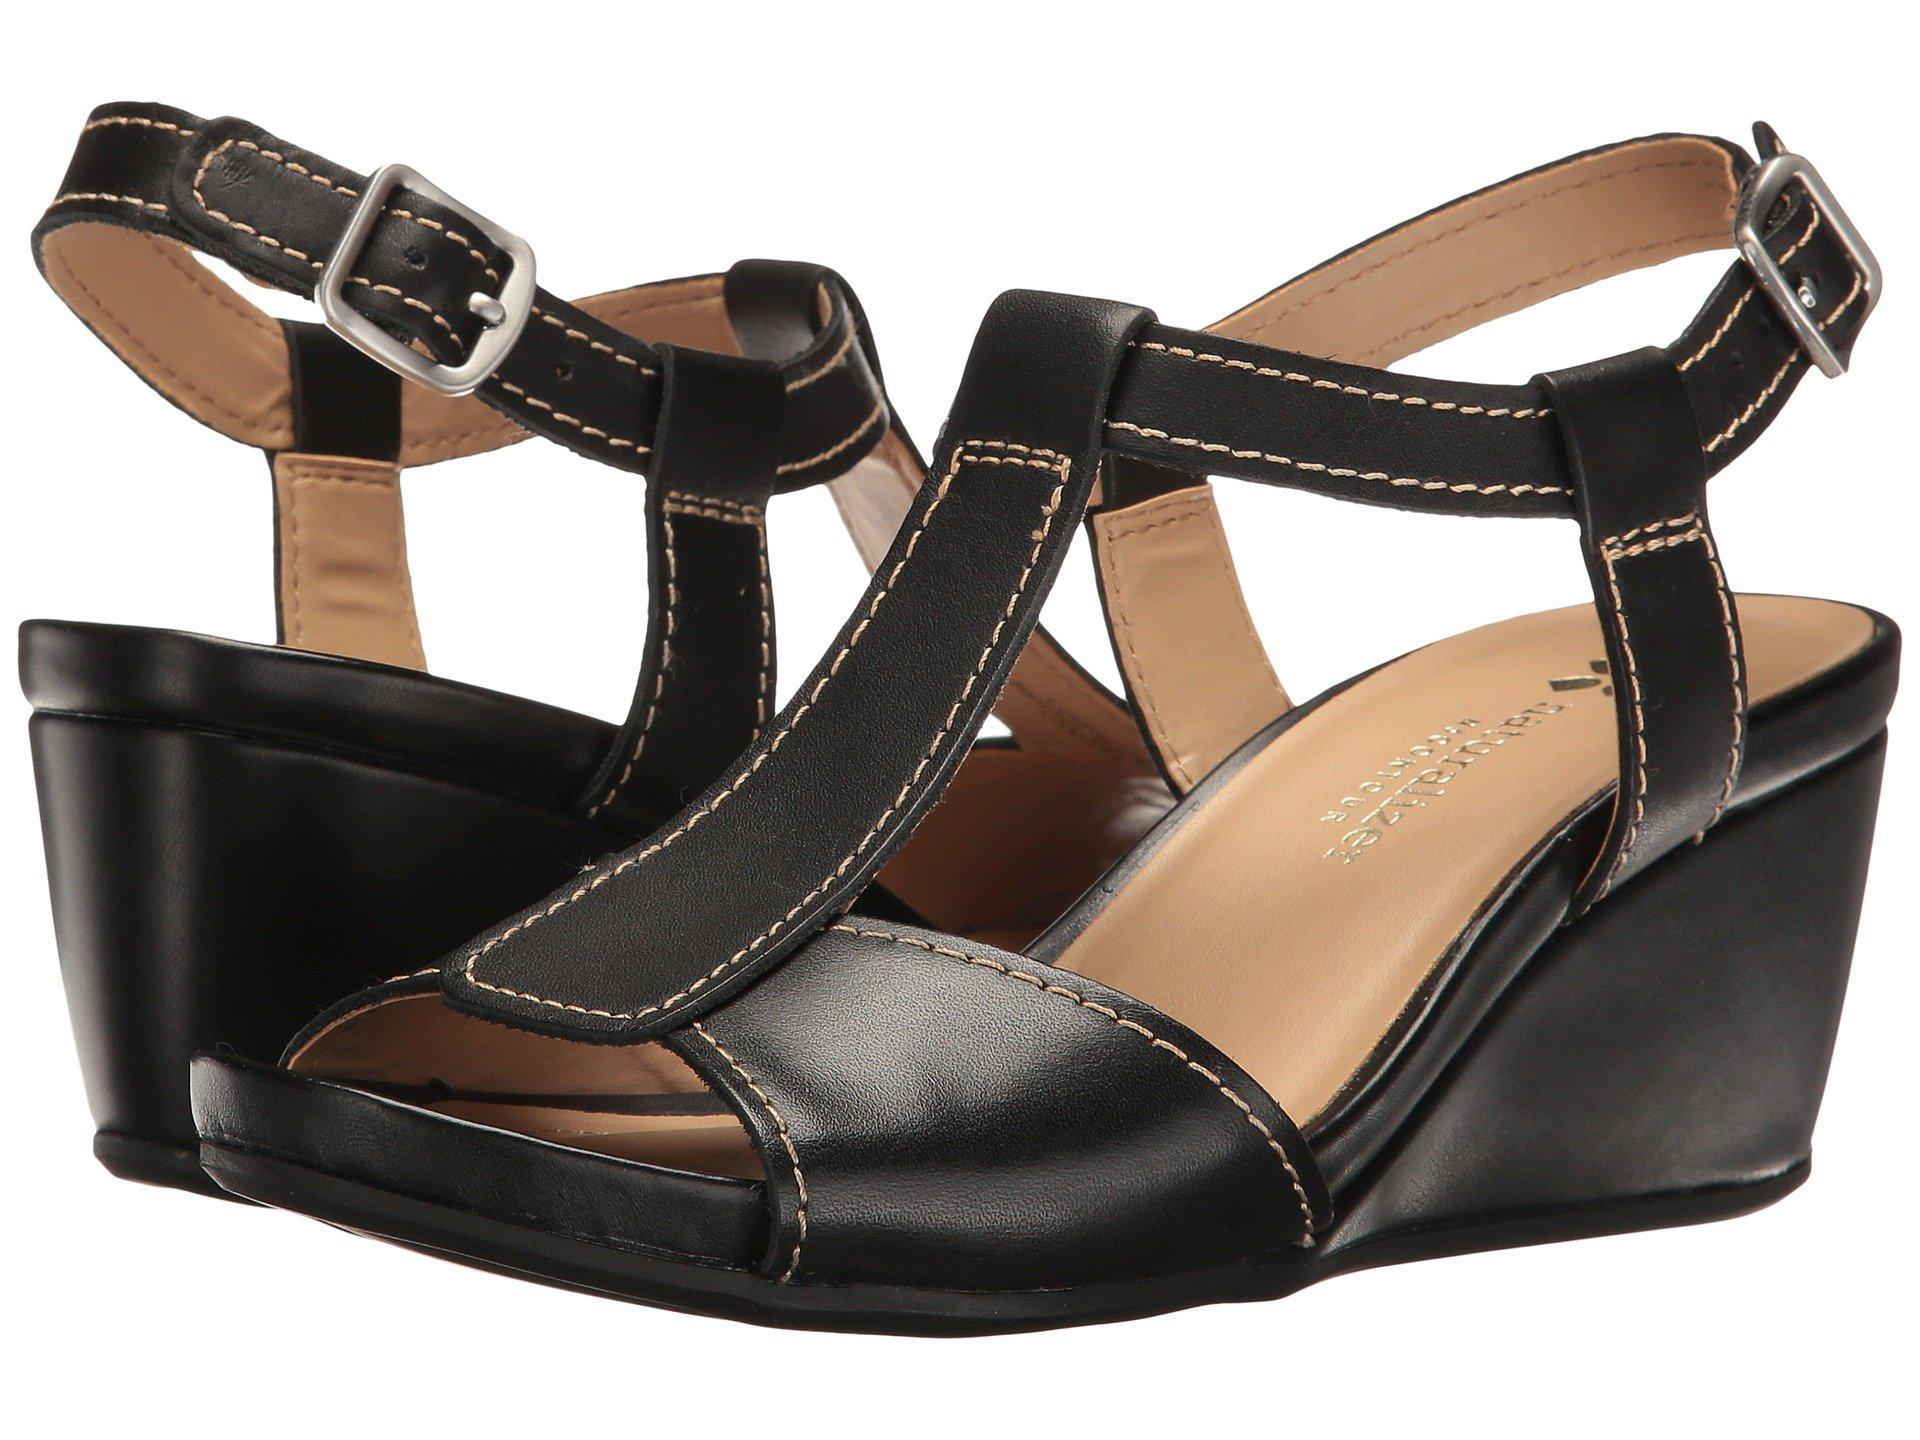 acee3104d454 Lyst - Naturalizer Camilla Wedge Sandal in Black - Save 55%